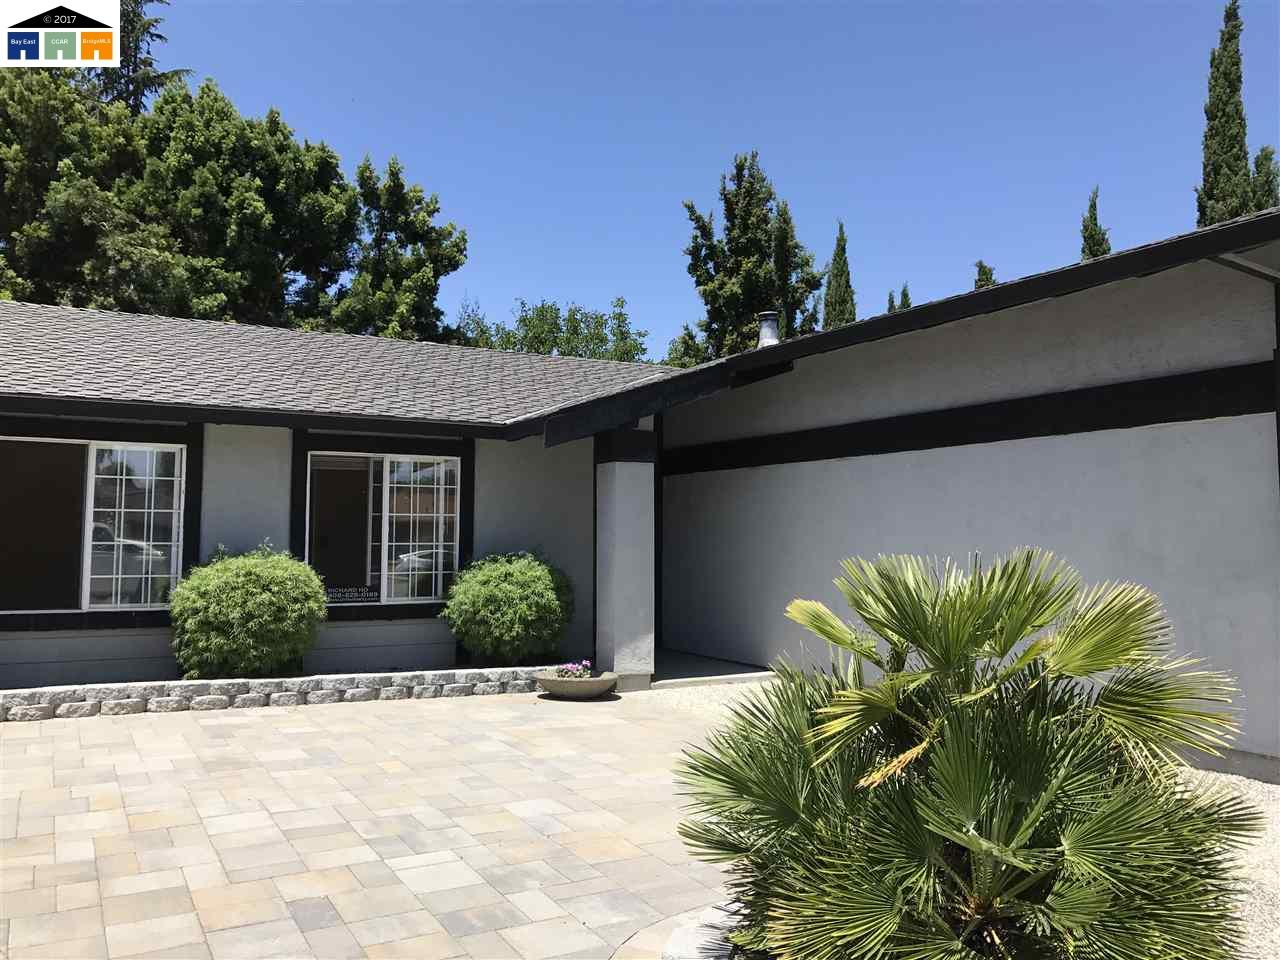 Additional photo for property listing at 3971 Baldwin Court  Fremont, California 94536 United States